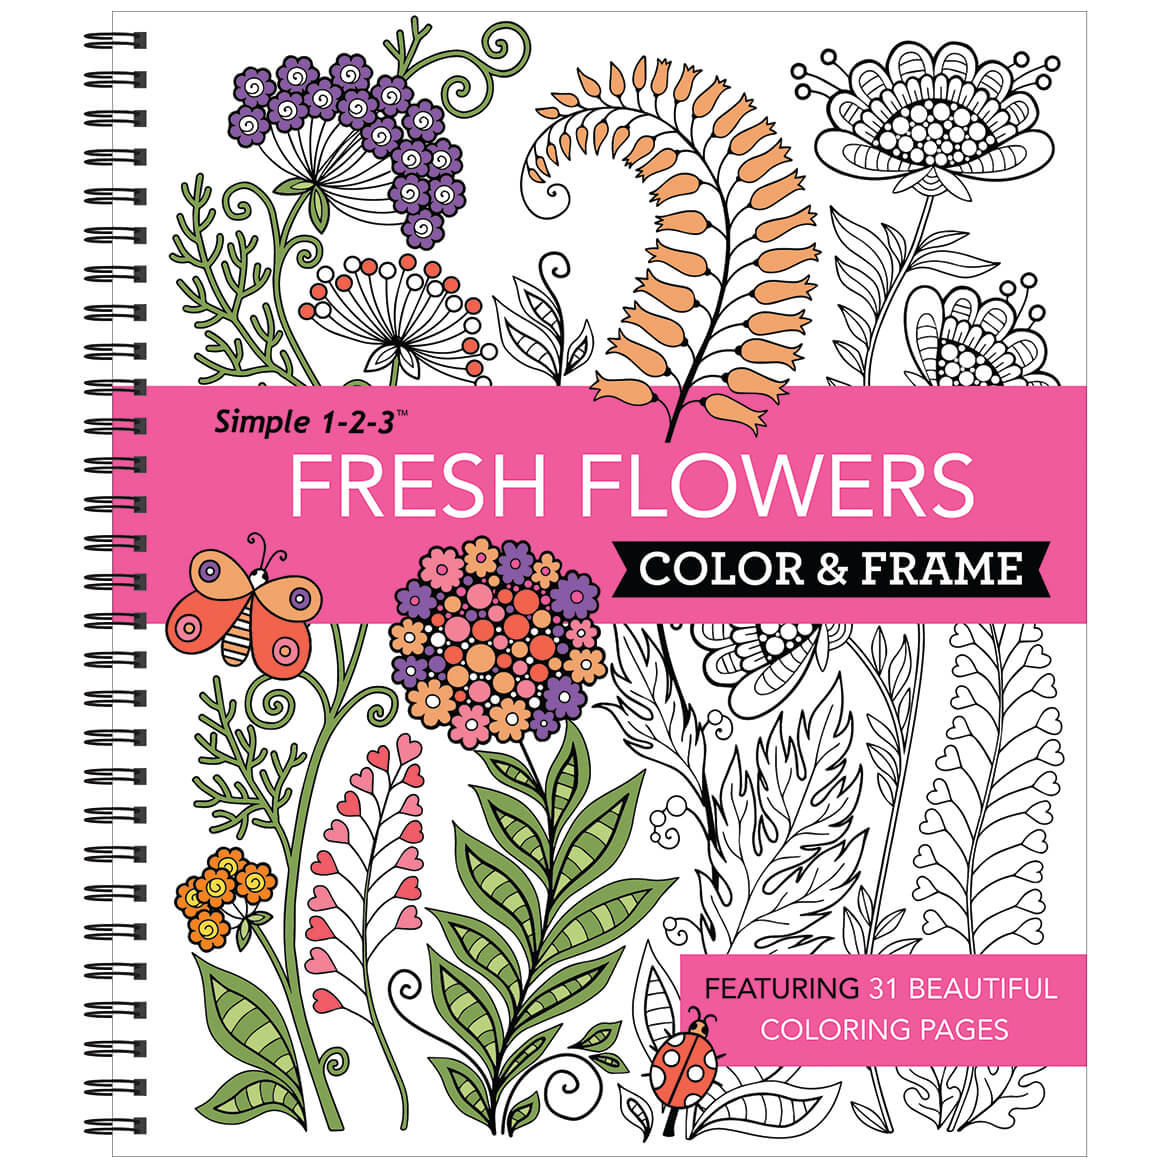 Simple 1-2-3™ Fresh Flowers Color & Frame Book-371541